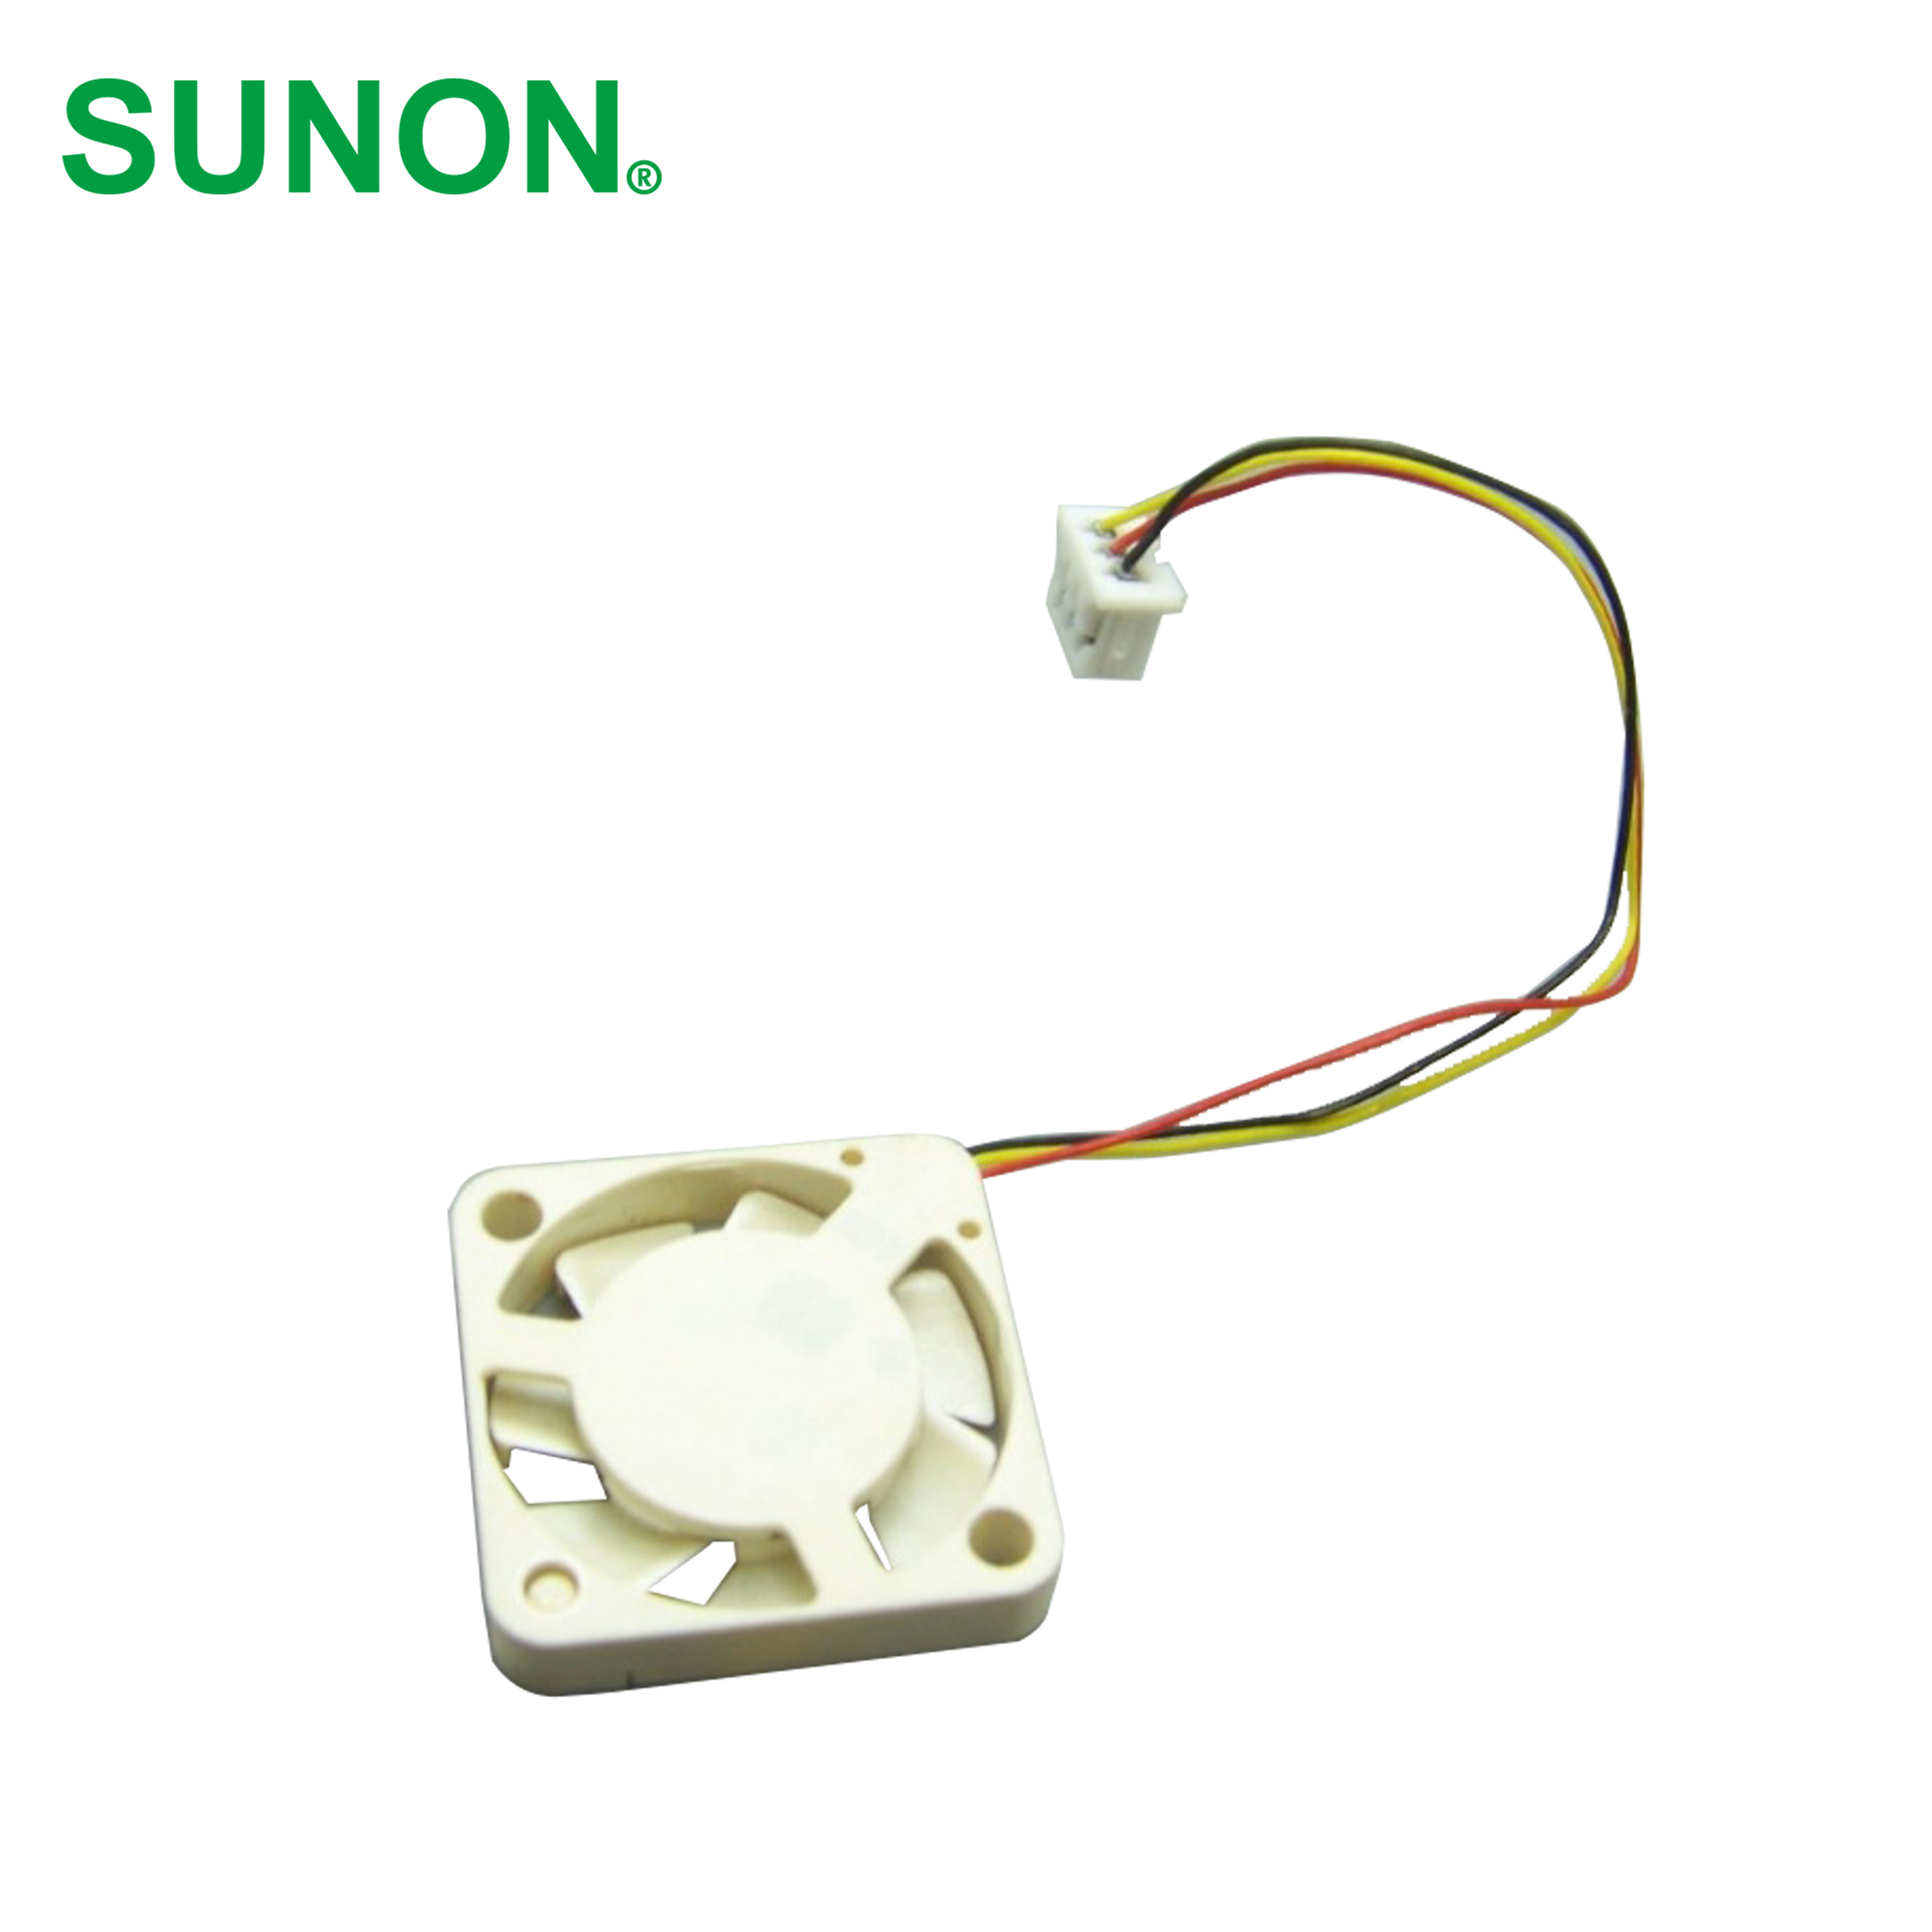 SUNON  original 1703 1.7cm  UF5H5-503  5V 3wires waterproof micro mini axial cooling fan for wholesale free shipping original delta cooling fan nfb10512hf 7f03 49 87y01g001 12v 0 39a 3 wires projector 5pcs lot